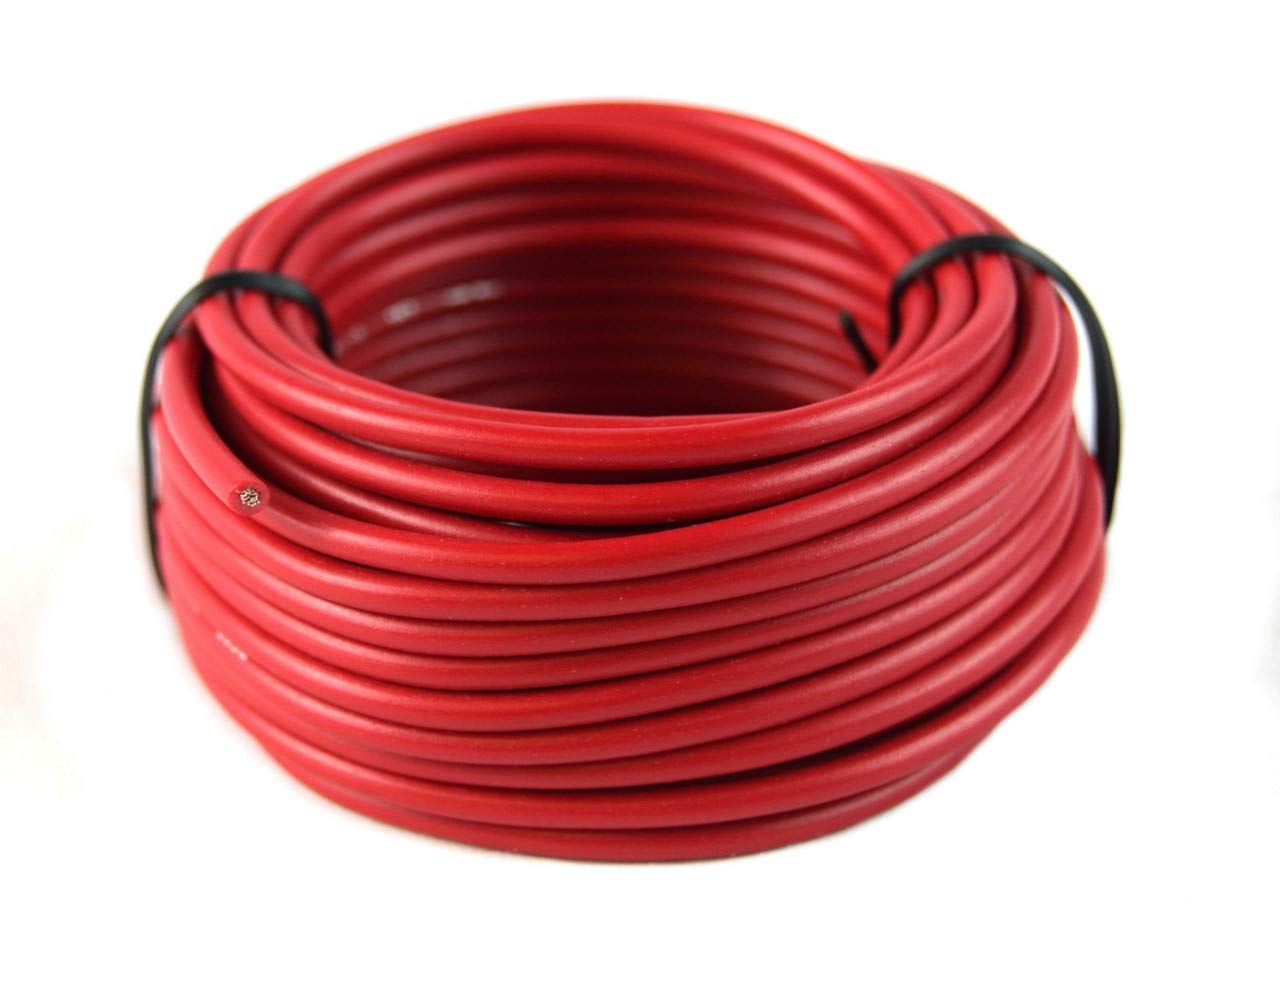 16 Gauge Red /& Black Power Ground Wire 25 FT Each 50 Total Stranded Copper Clad Best Connections